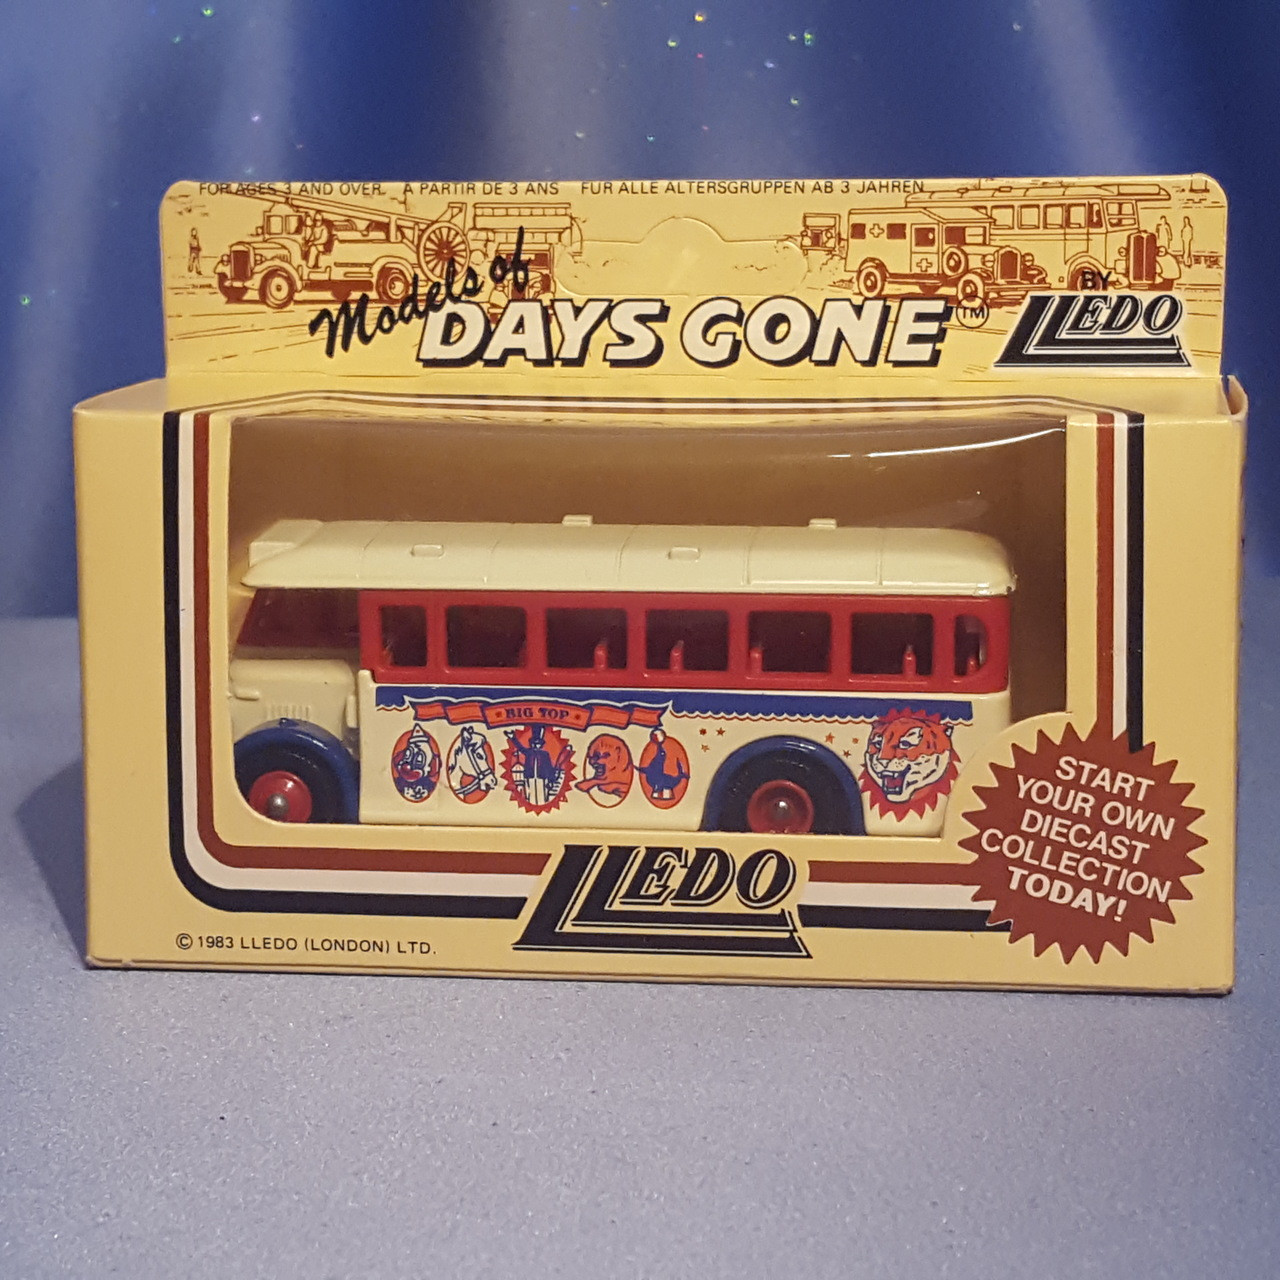 1930's Single Deck Bus - Big Top Circus - Models of Day